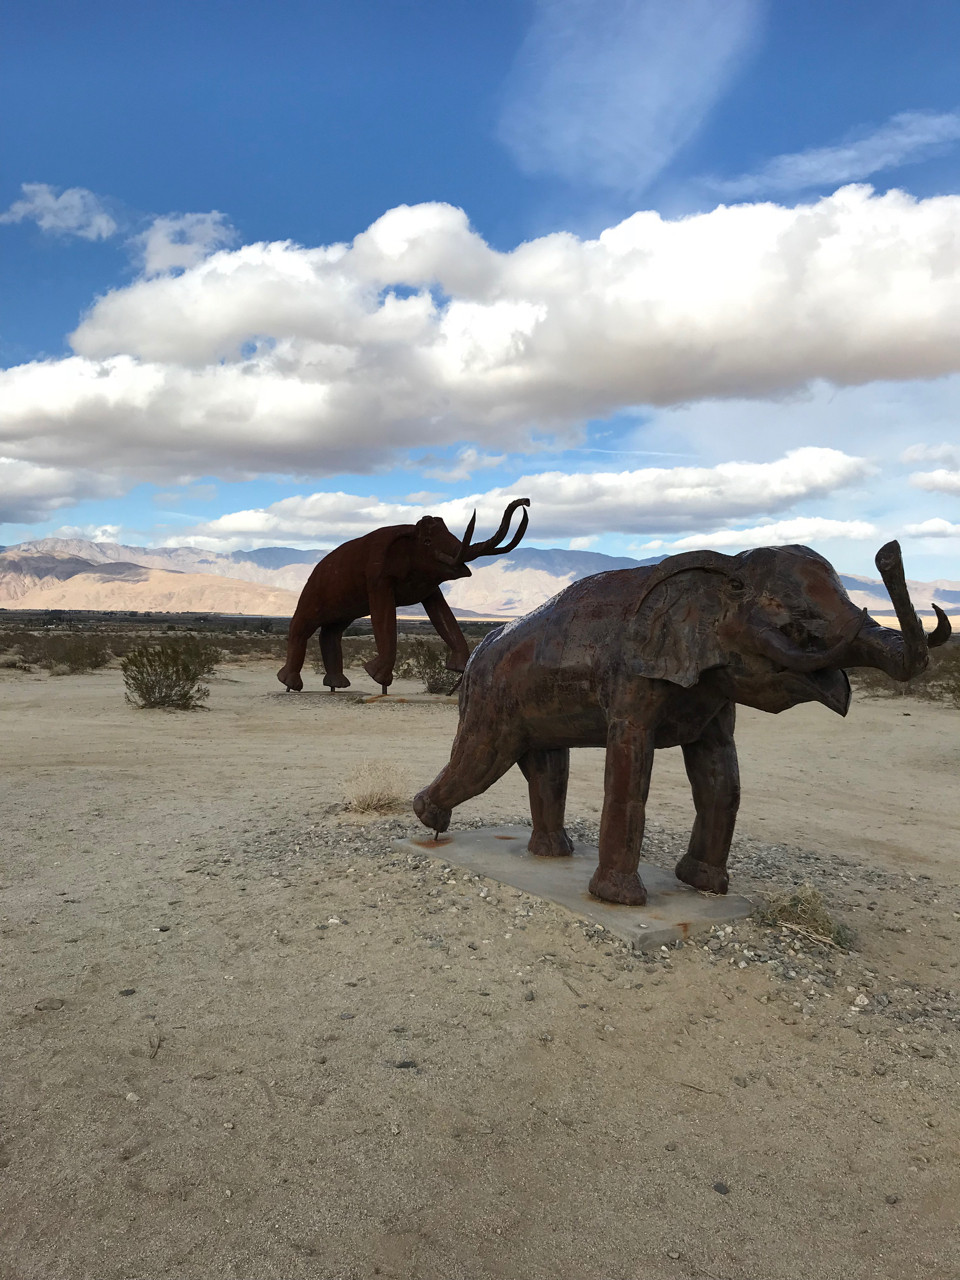 elephant sculptures in the desert